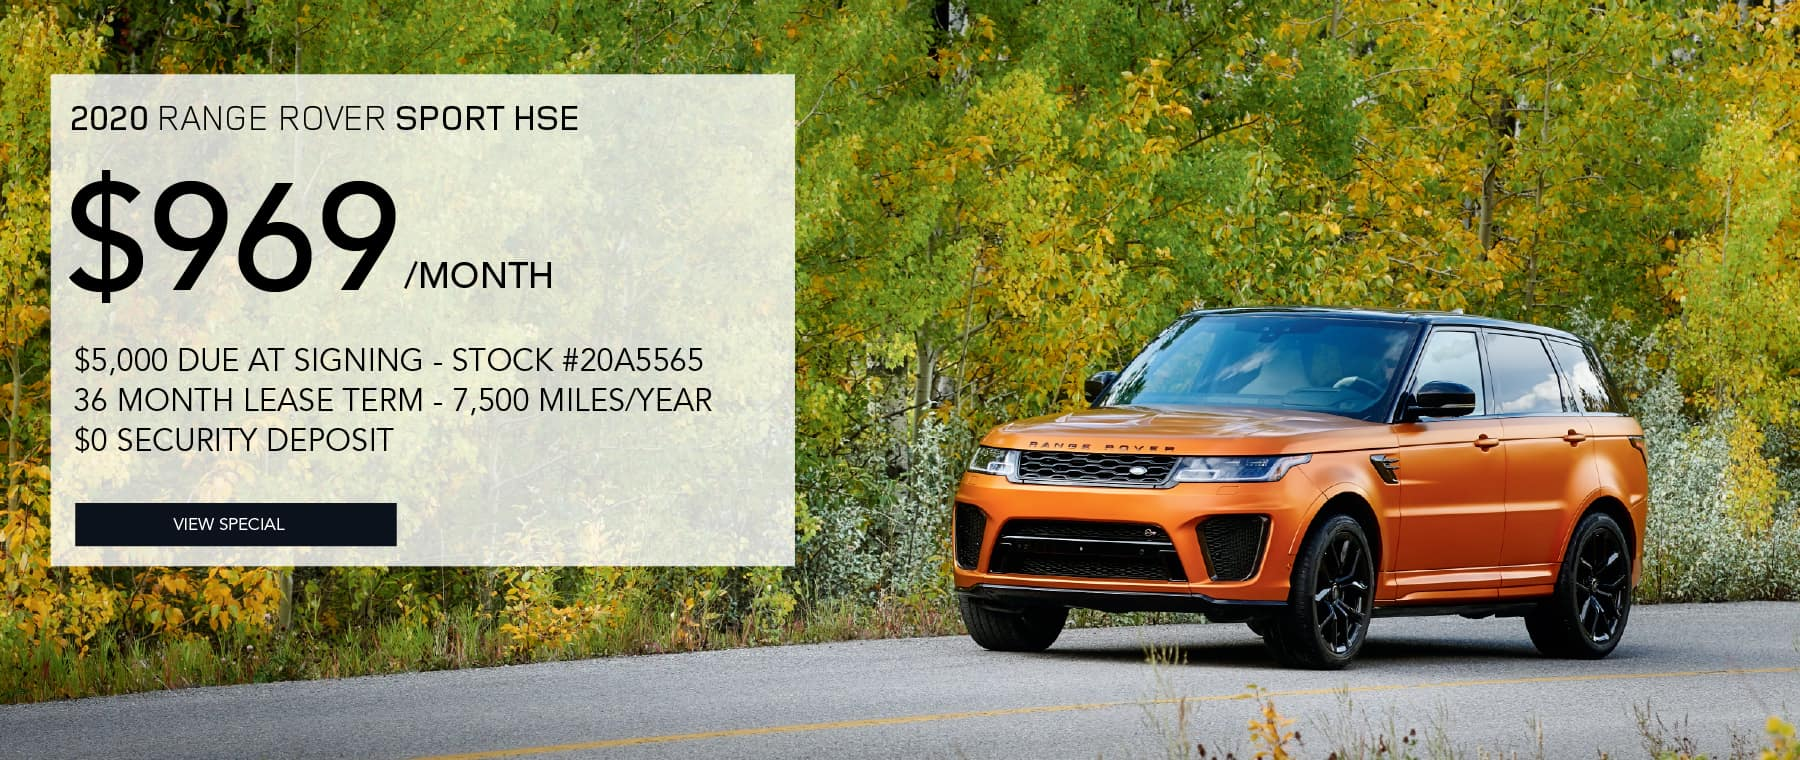 2020 RANGE ROVER SPORT HSE. $969 PER MONTH FOR 36 MONTHS. $5,000 DUE AT SIGNING. STOCK #20A5565. 7,500 MILES/YEAR. $0 SECURITY DEPOSIT. VIEW SPECIAL. ORANGE RANGE ROVER SPORT DRIVING DOWN ROAD WITH FALL COLORED TREES.